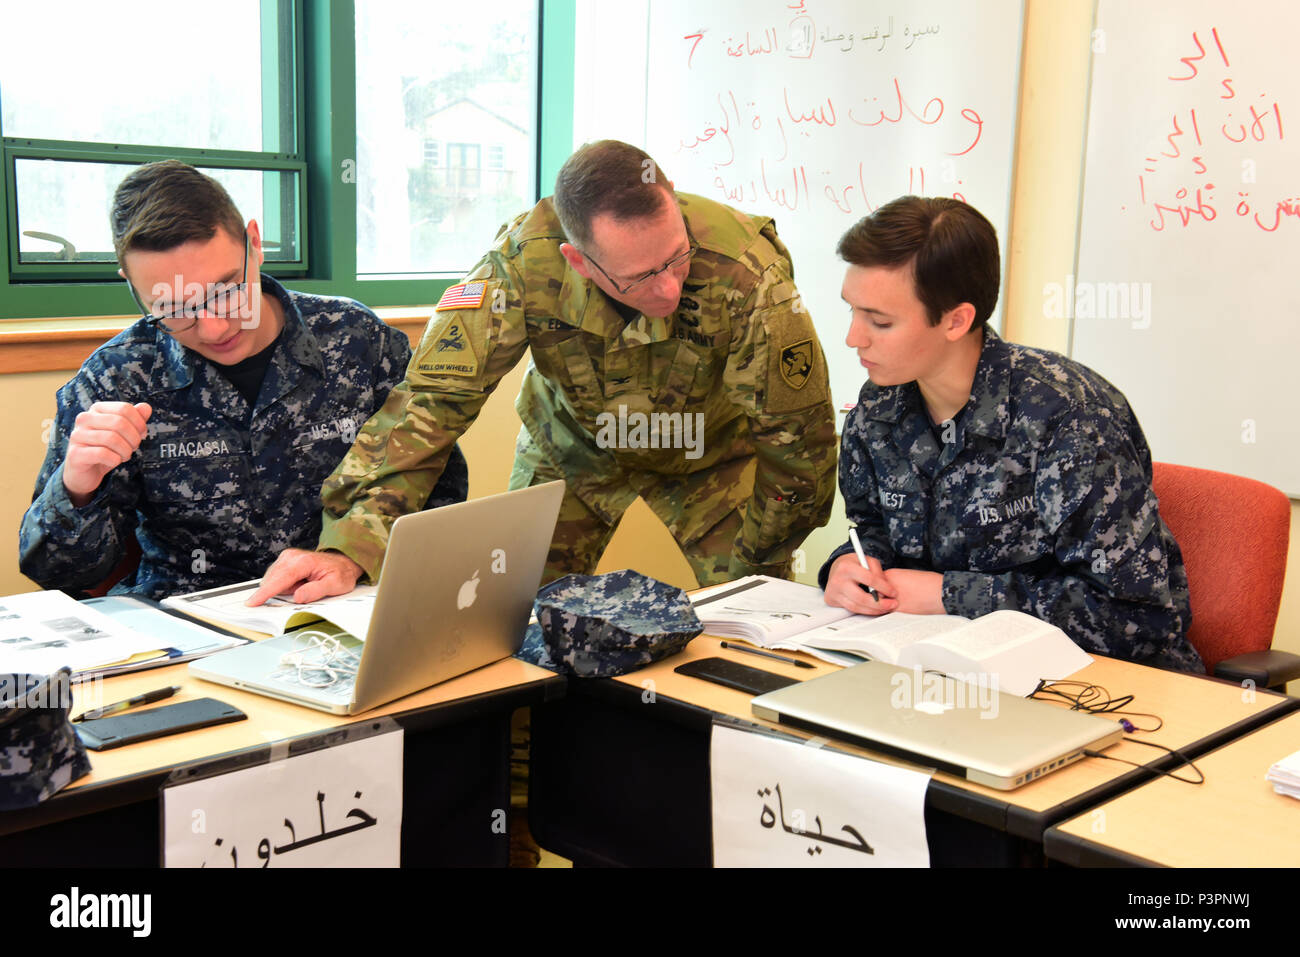 1996 1997 Stock Photos & 1996 1997 Stock Images - Alamy